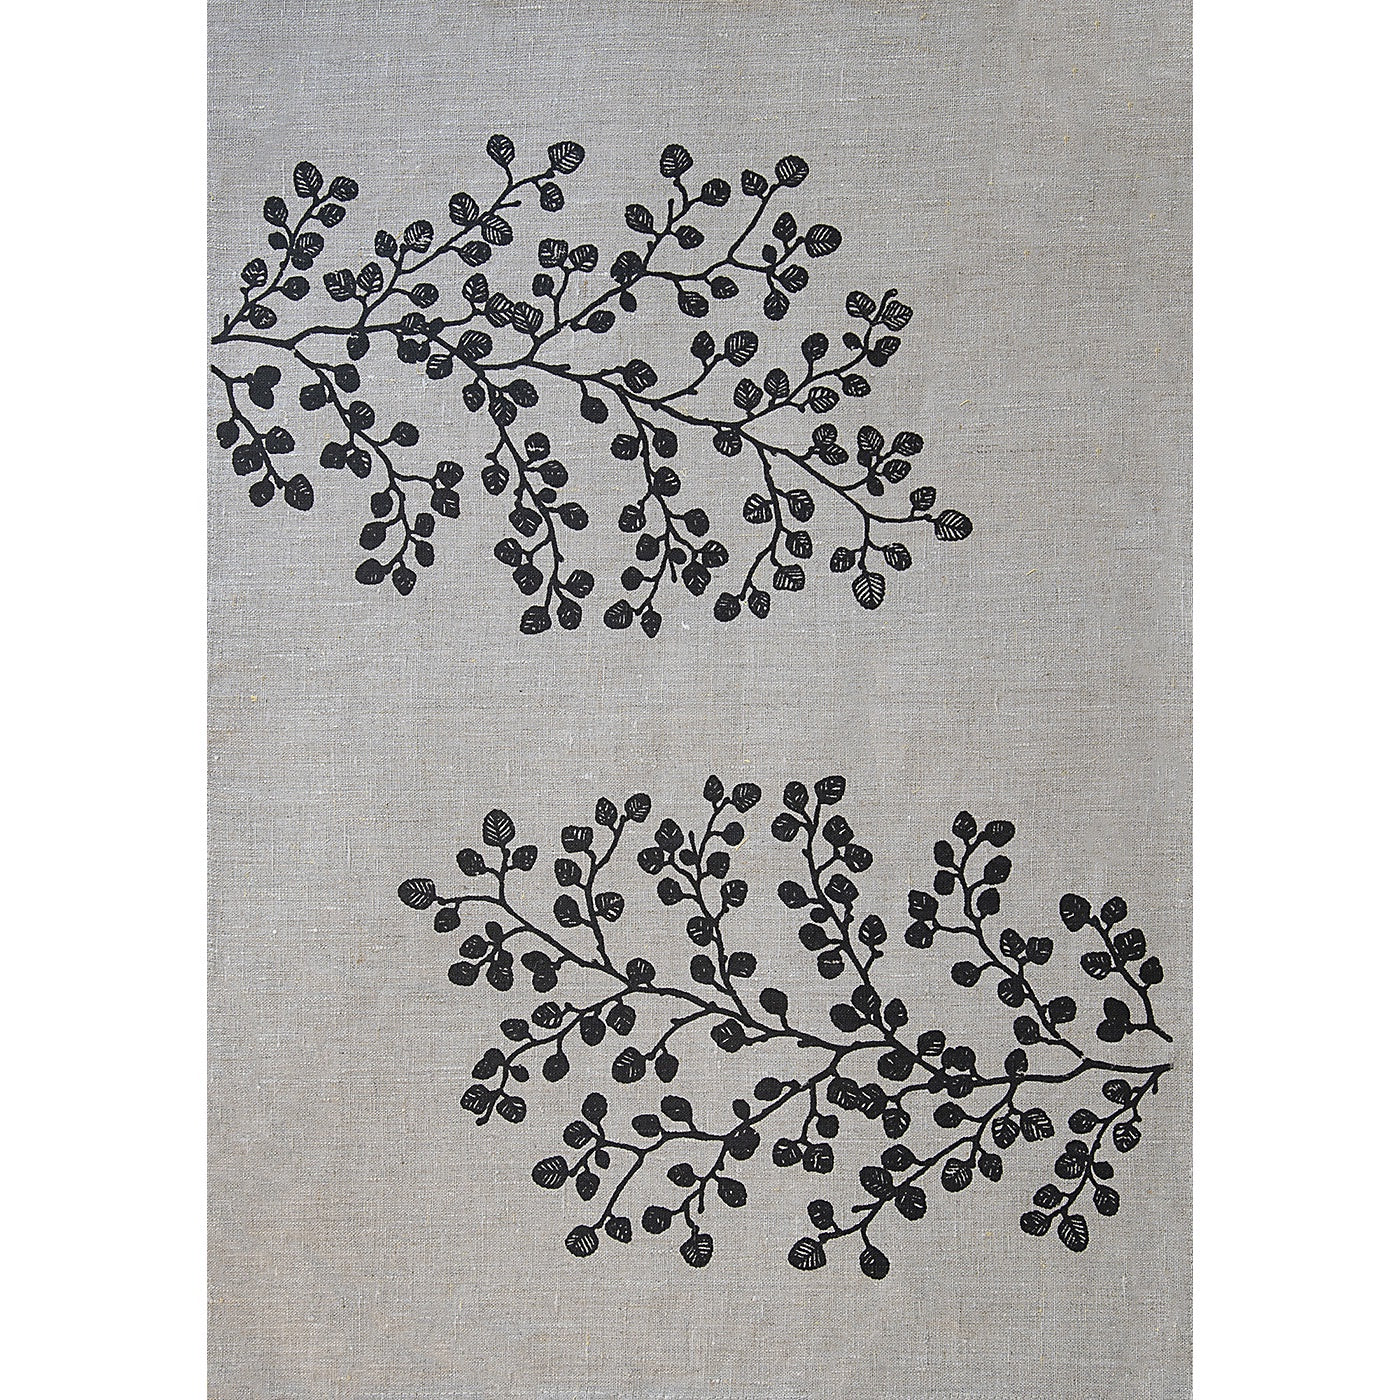 Stalley Textile Co. - Tea Towel - Fagus - Black on Flax